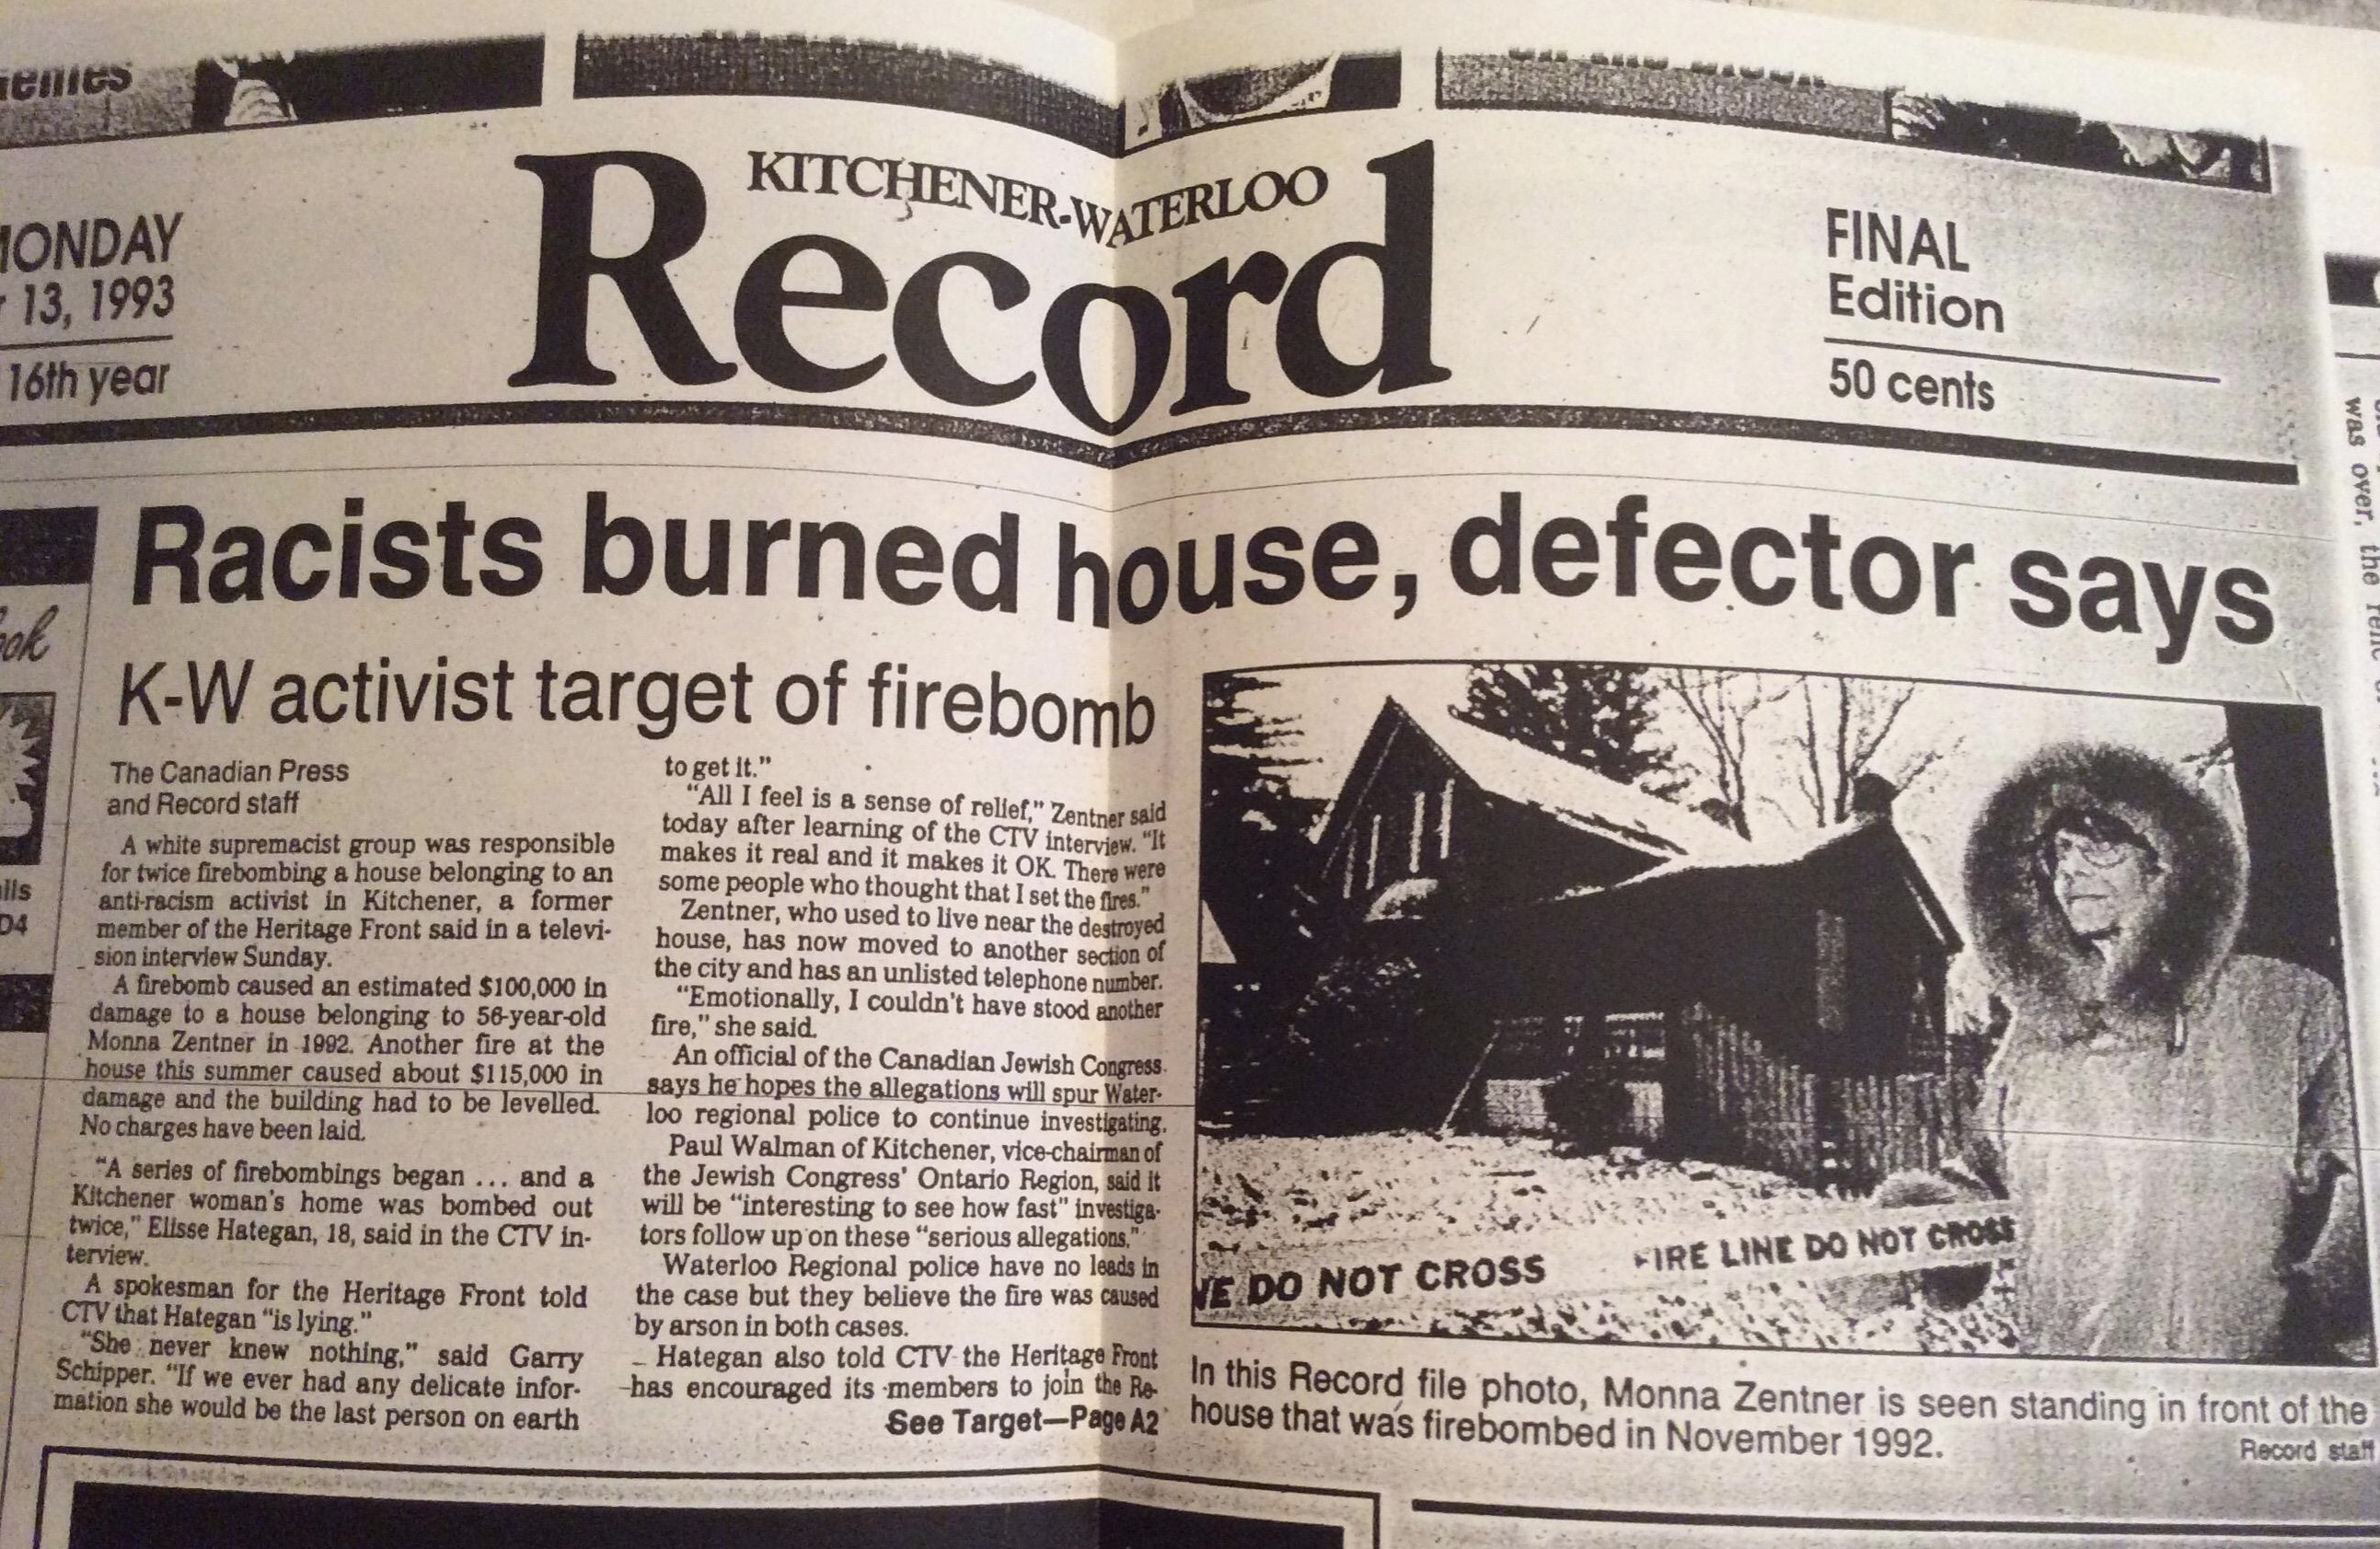 Kitchener Mona Zentner house firebombing